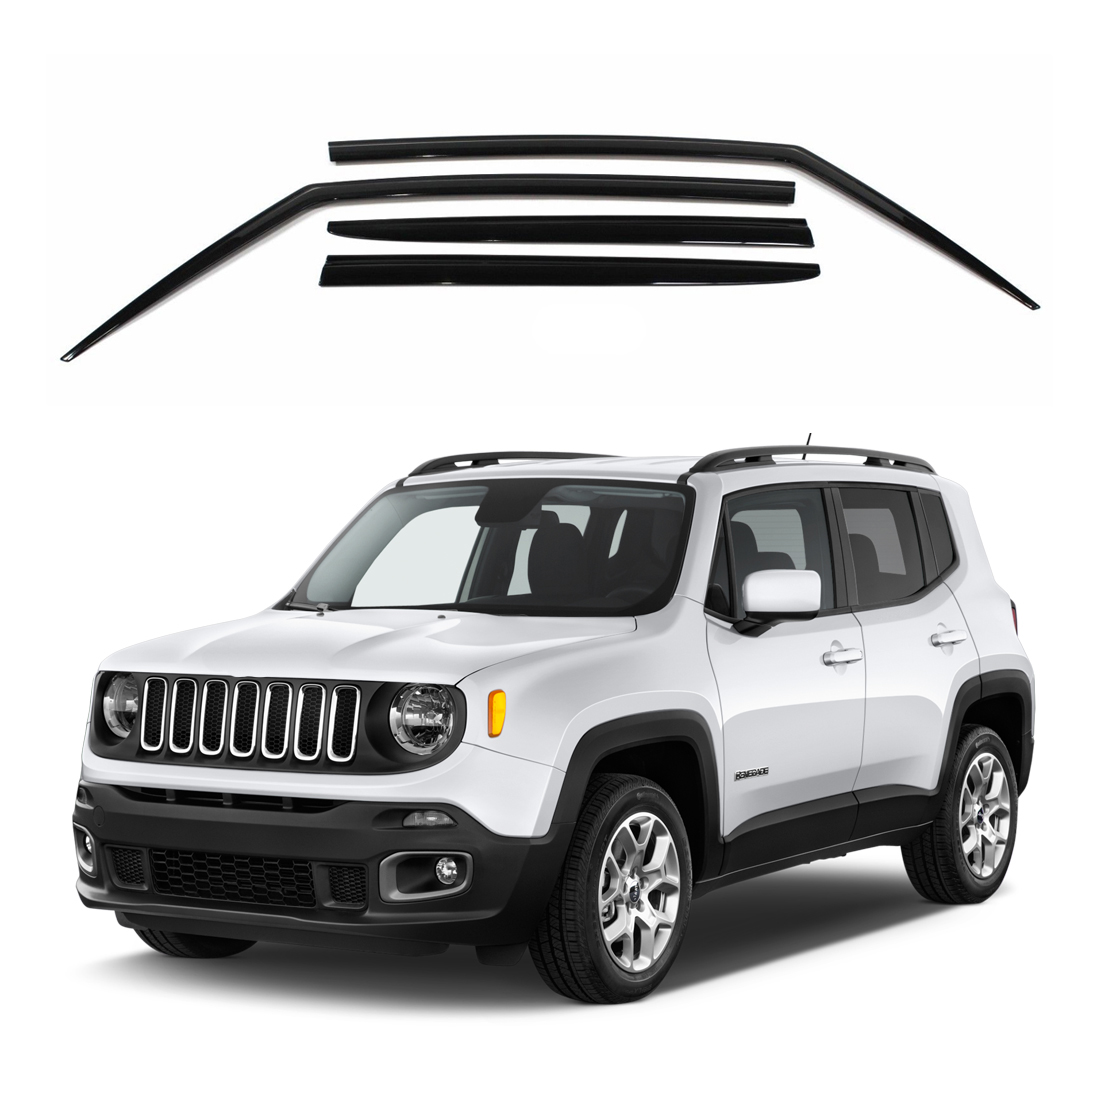 Safe RAIN Out-Channel Deflector AUTOCLOVER Dark Smoke Side Window Vent Visor 4 Piece Set for Jeep Renegade 2015 2016 2017 2018 2019